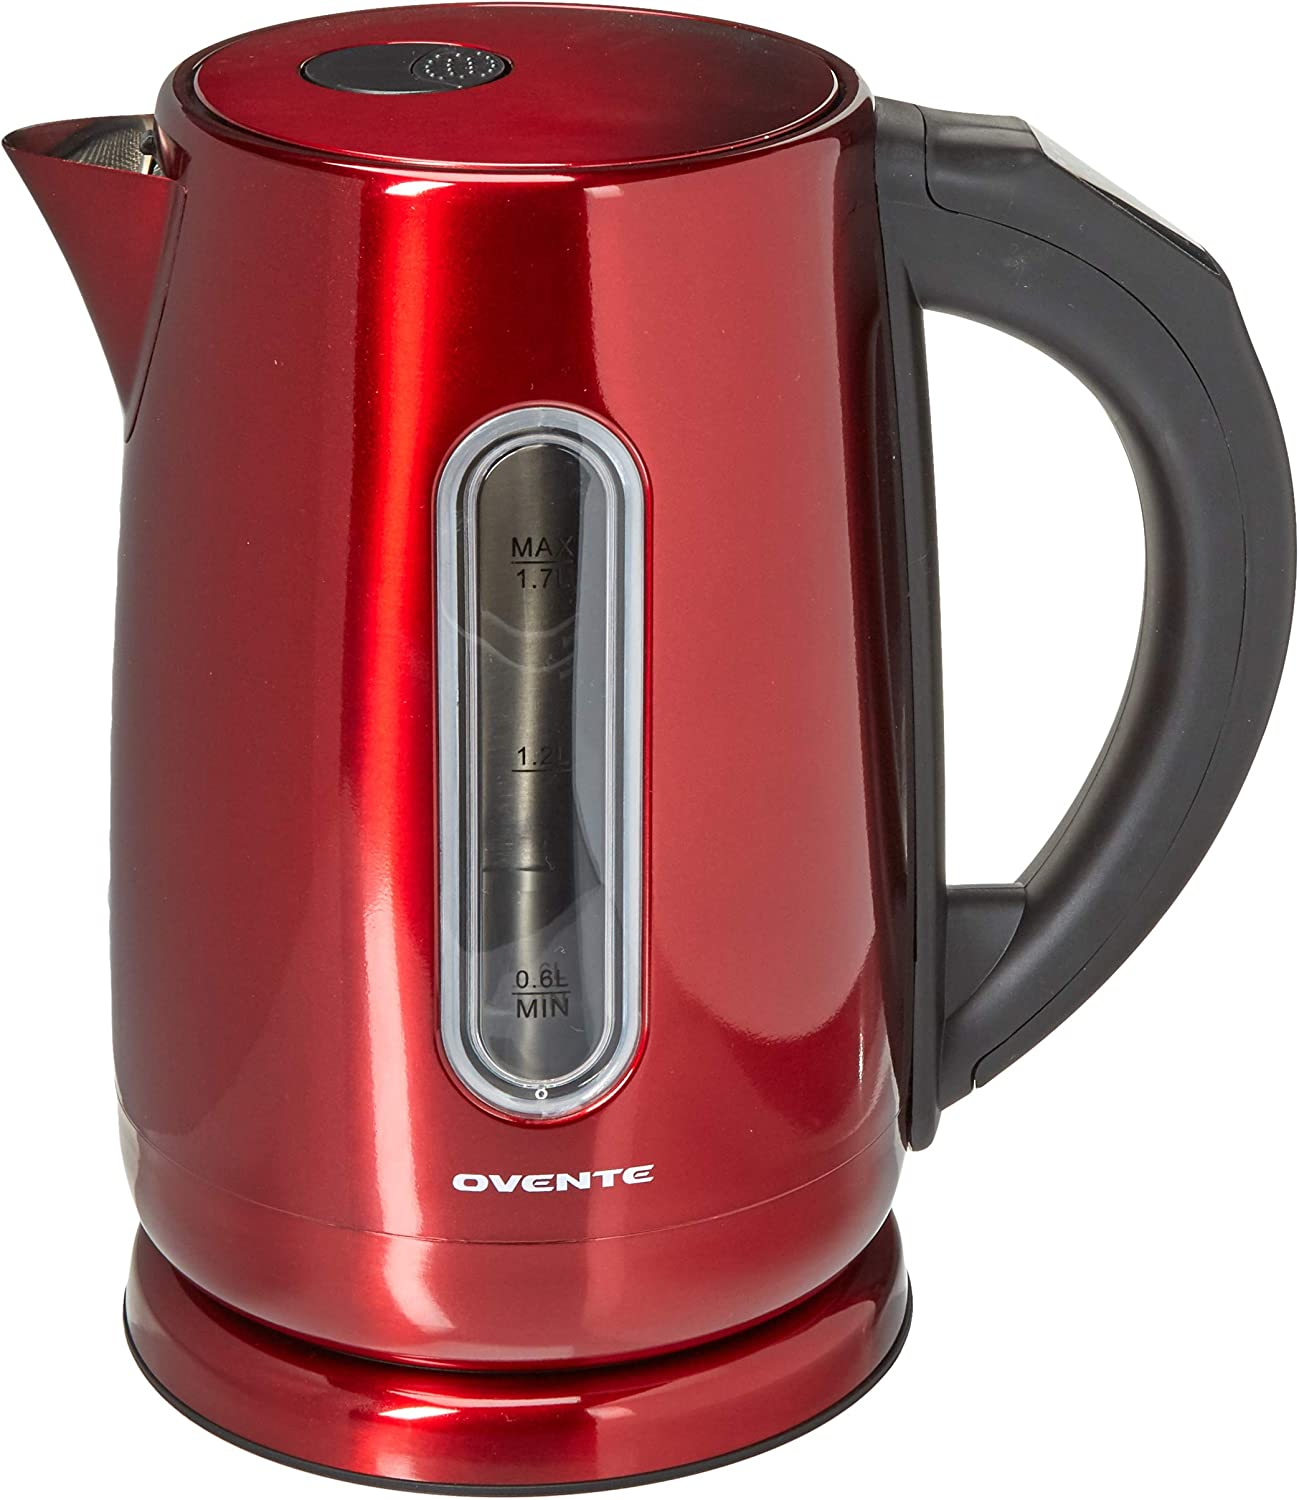 Ovente Electric Hot Water Kettle 1.7 Liter Stainless Steel with Touch Screen Control Panel, 1100 Watts, 5 Preset Settings, Auto Shutoff and Keep Warm Function, Red (KS58R)